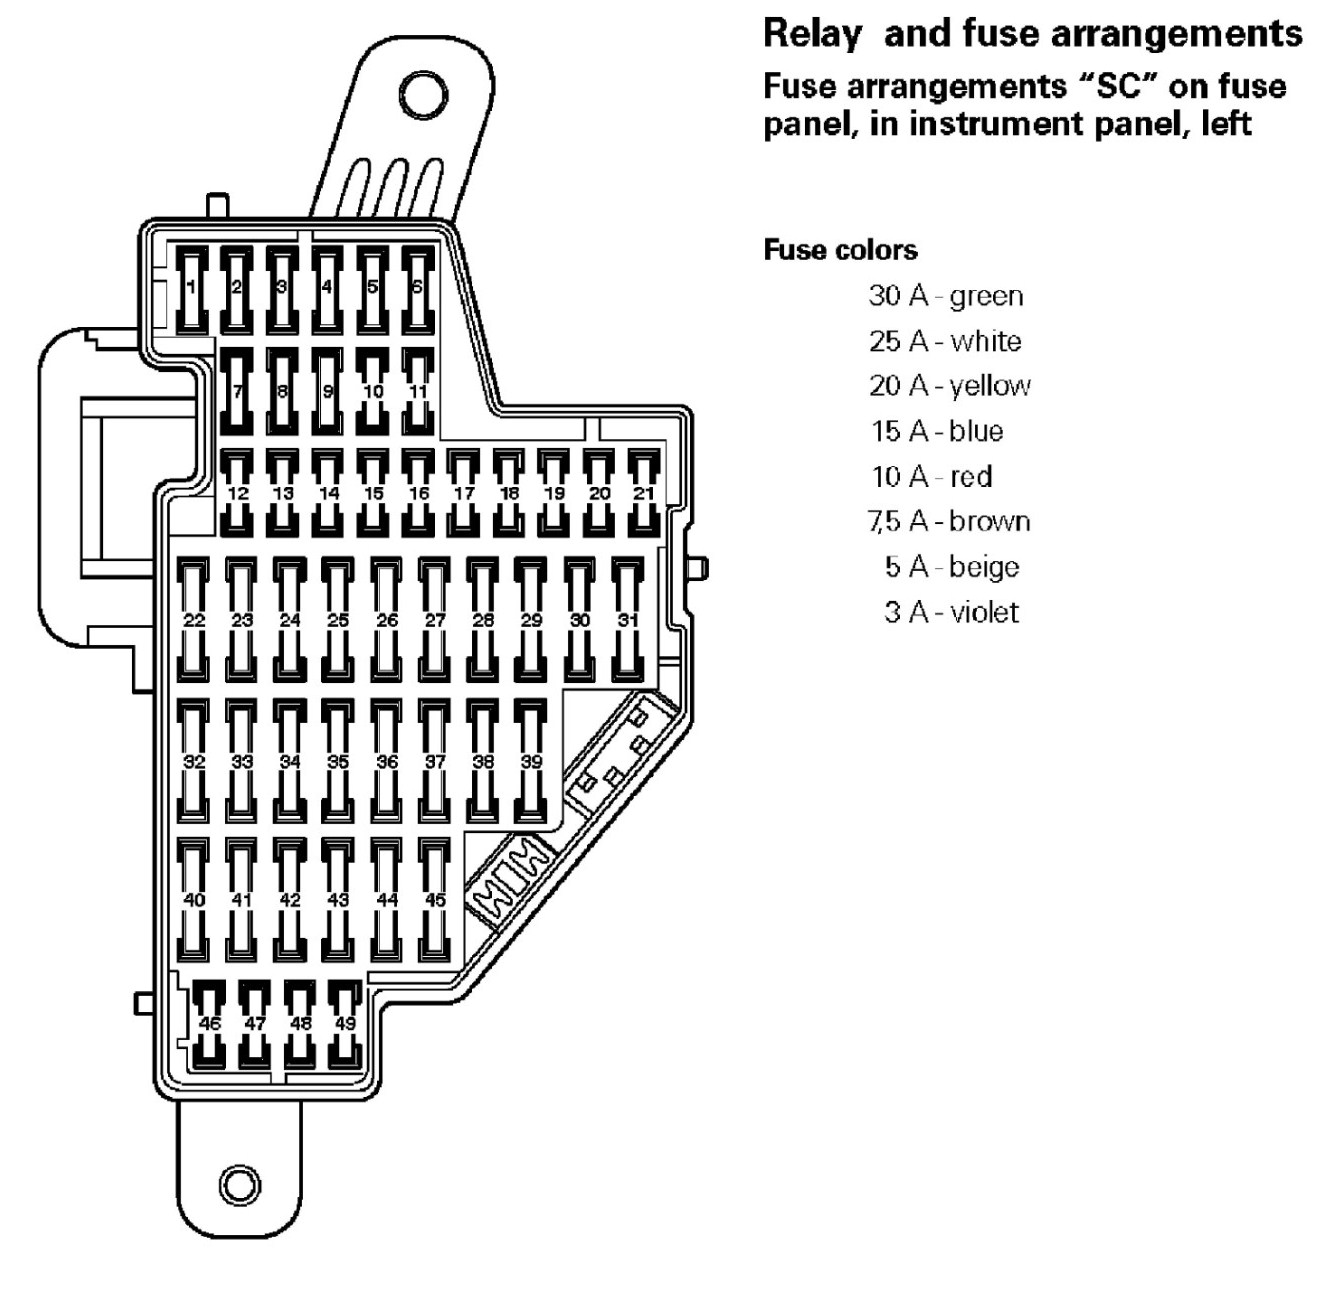 Sportwagen Fuse Diagram Wiring Libraries Ikon Governor 2006 Jetta 2 5 Box Origin2006 Source